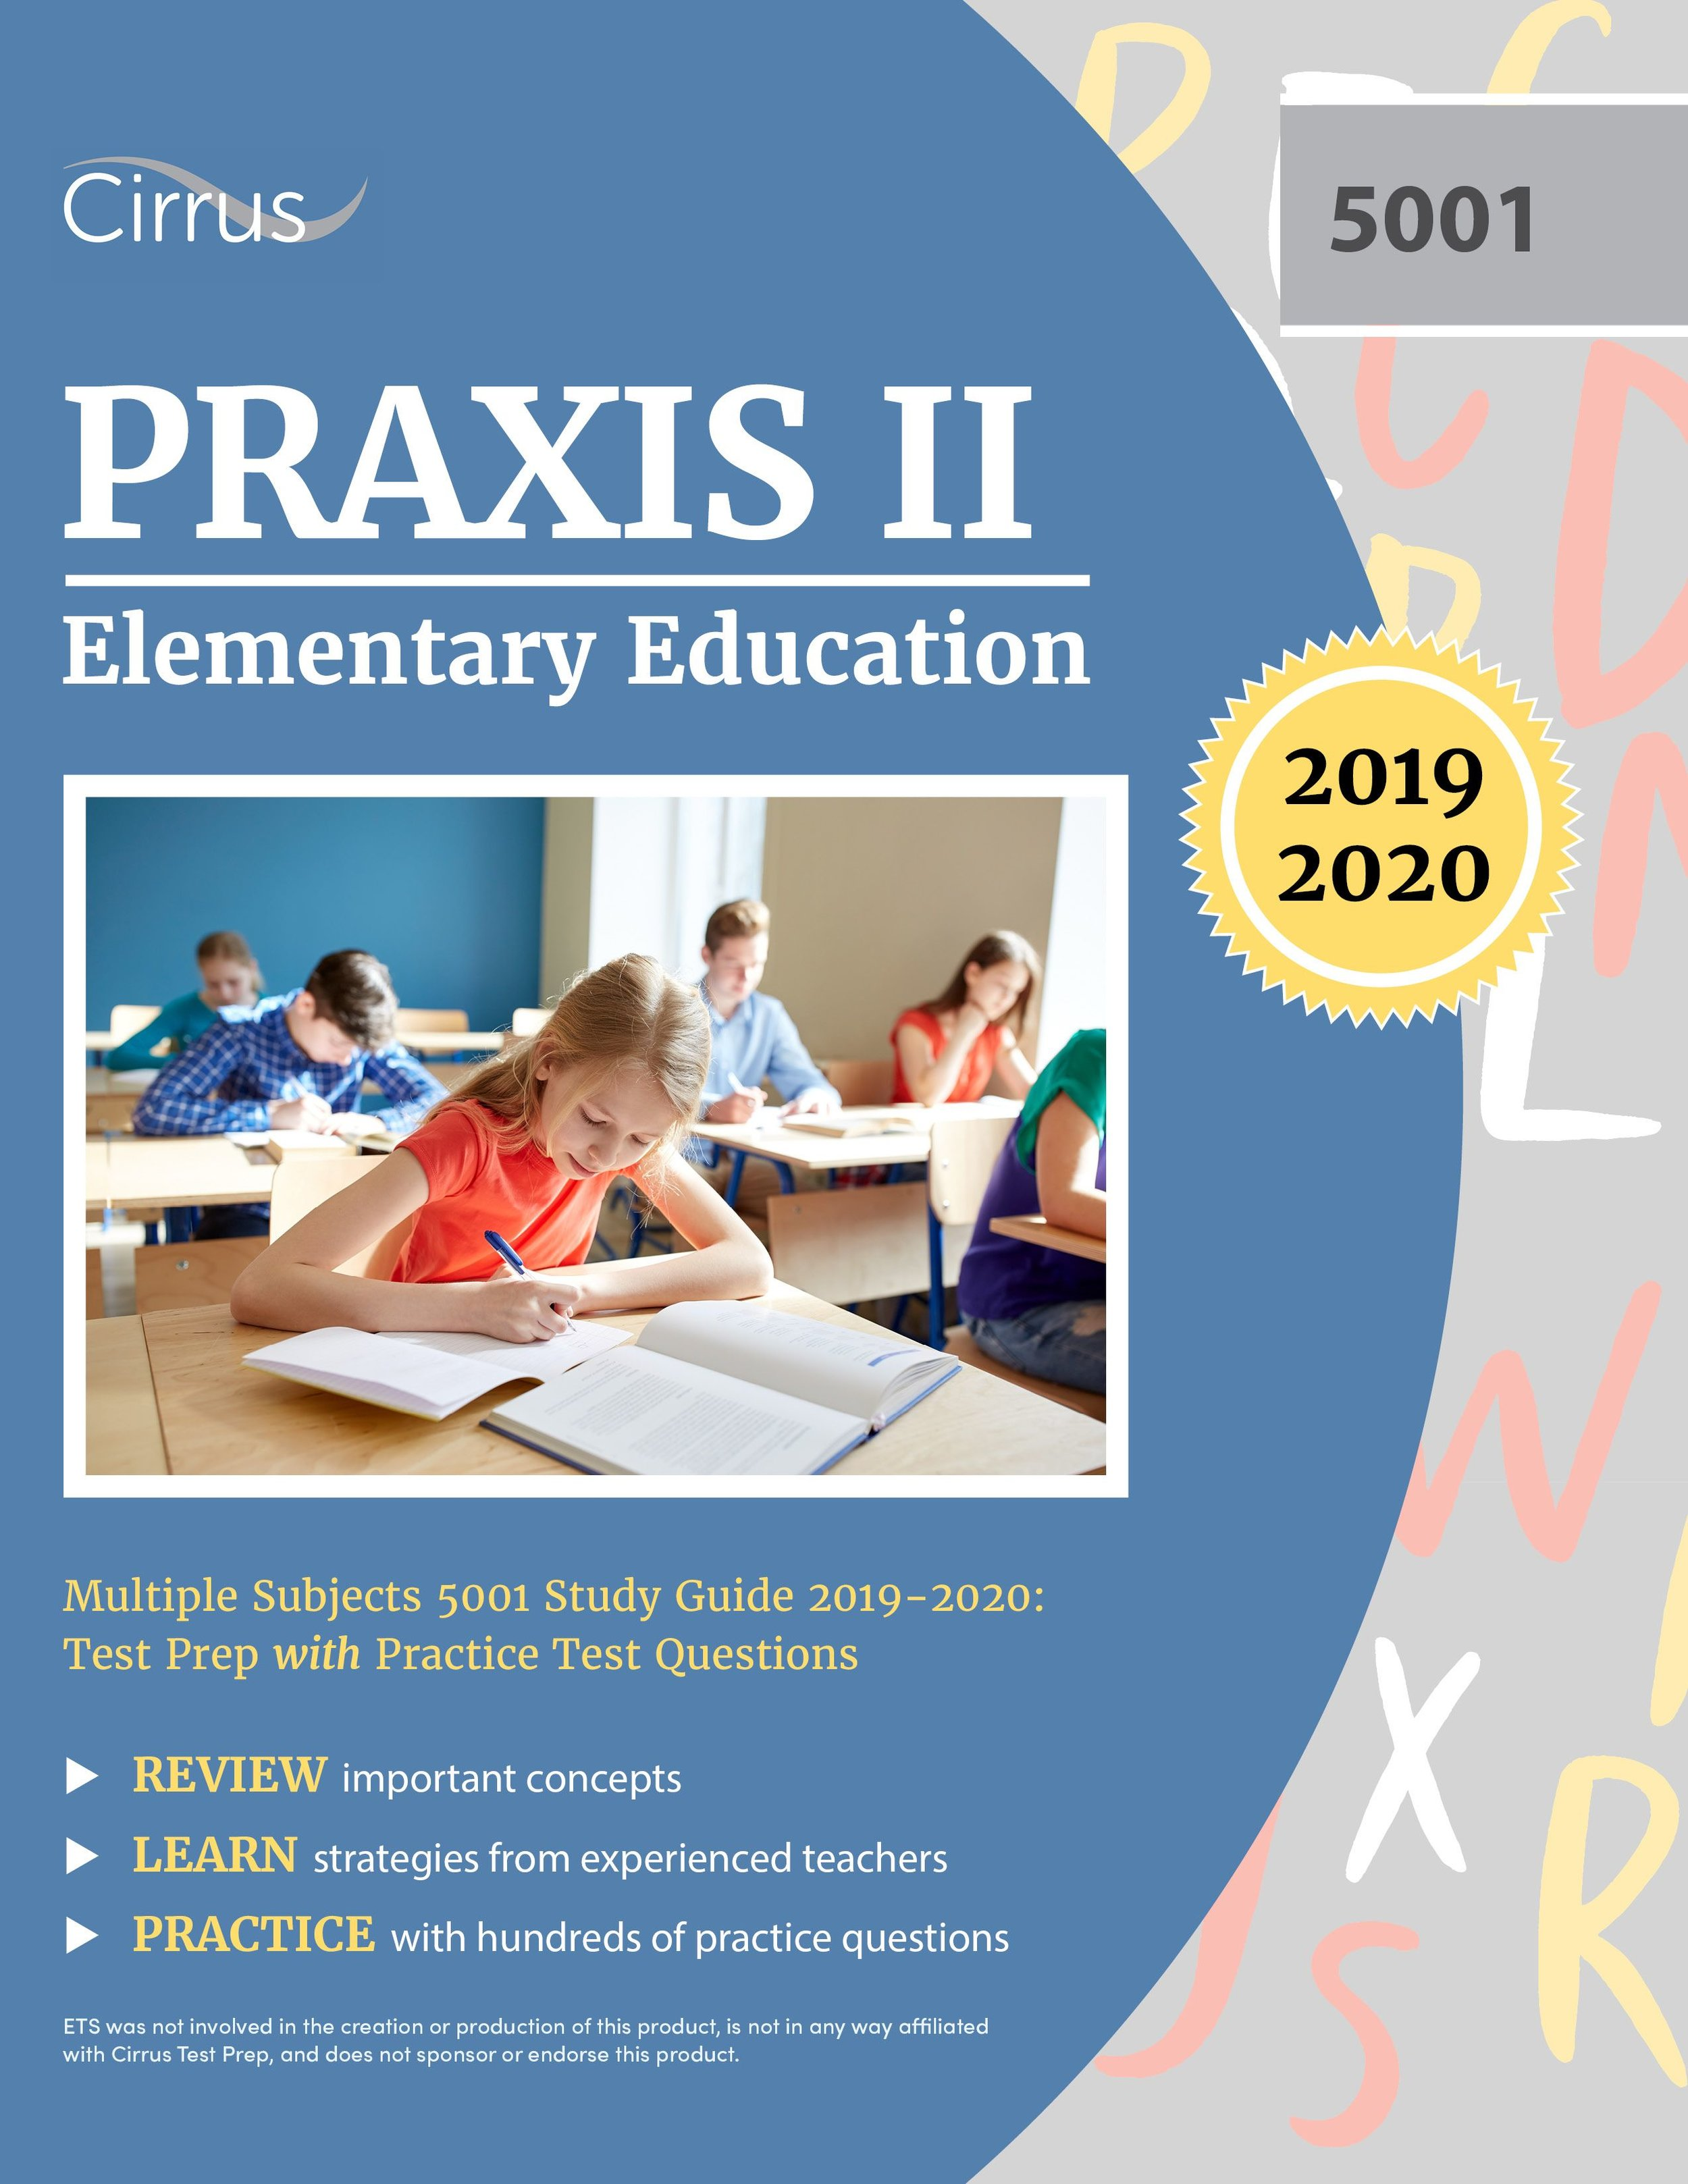 Praxis Elementary Education Multiple Subjects 5001 Study Guide 2019 – 2020